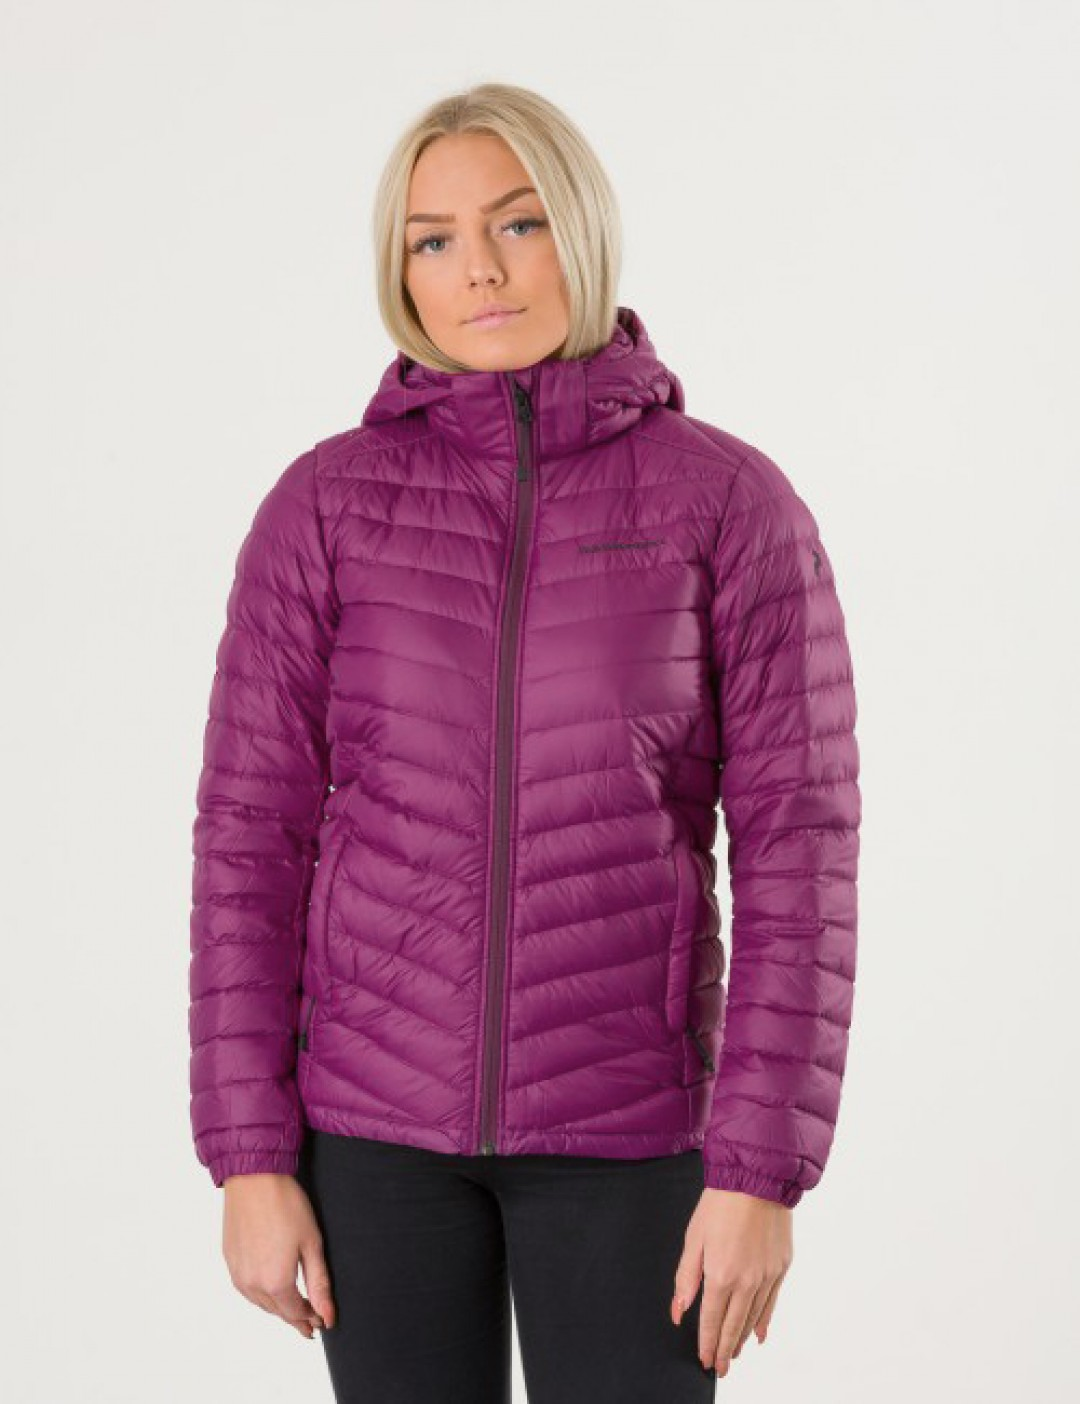 acb6bb22 Om Frost Down Hoodie Jacket - Lilla från Peak Performance ...